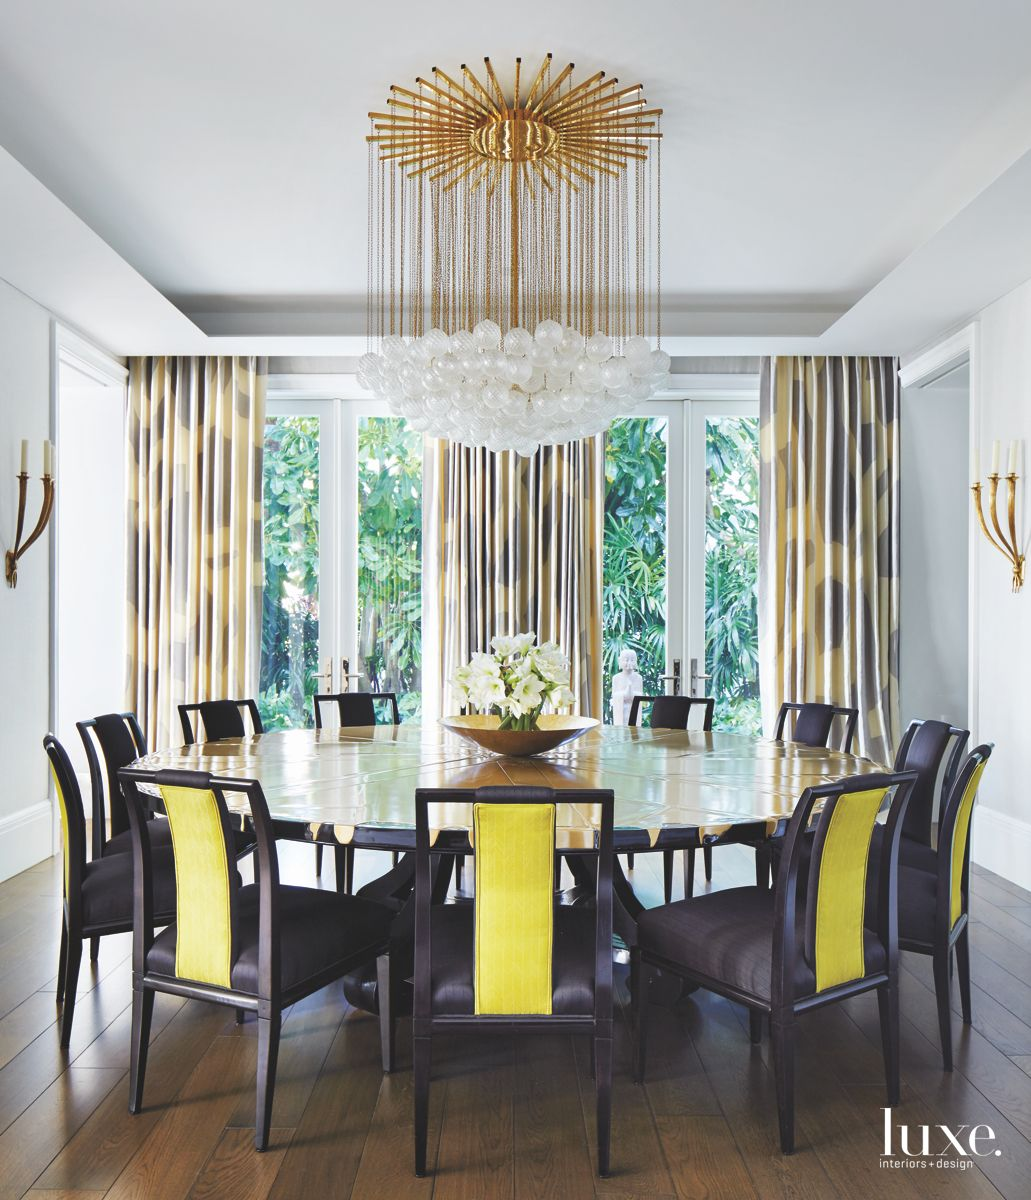 Dangling Statement Starburst Bubble Chandelier with Yellow Striped Chairs